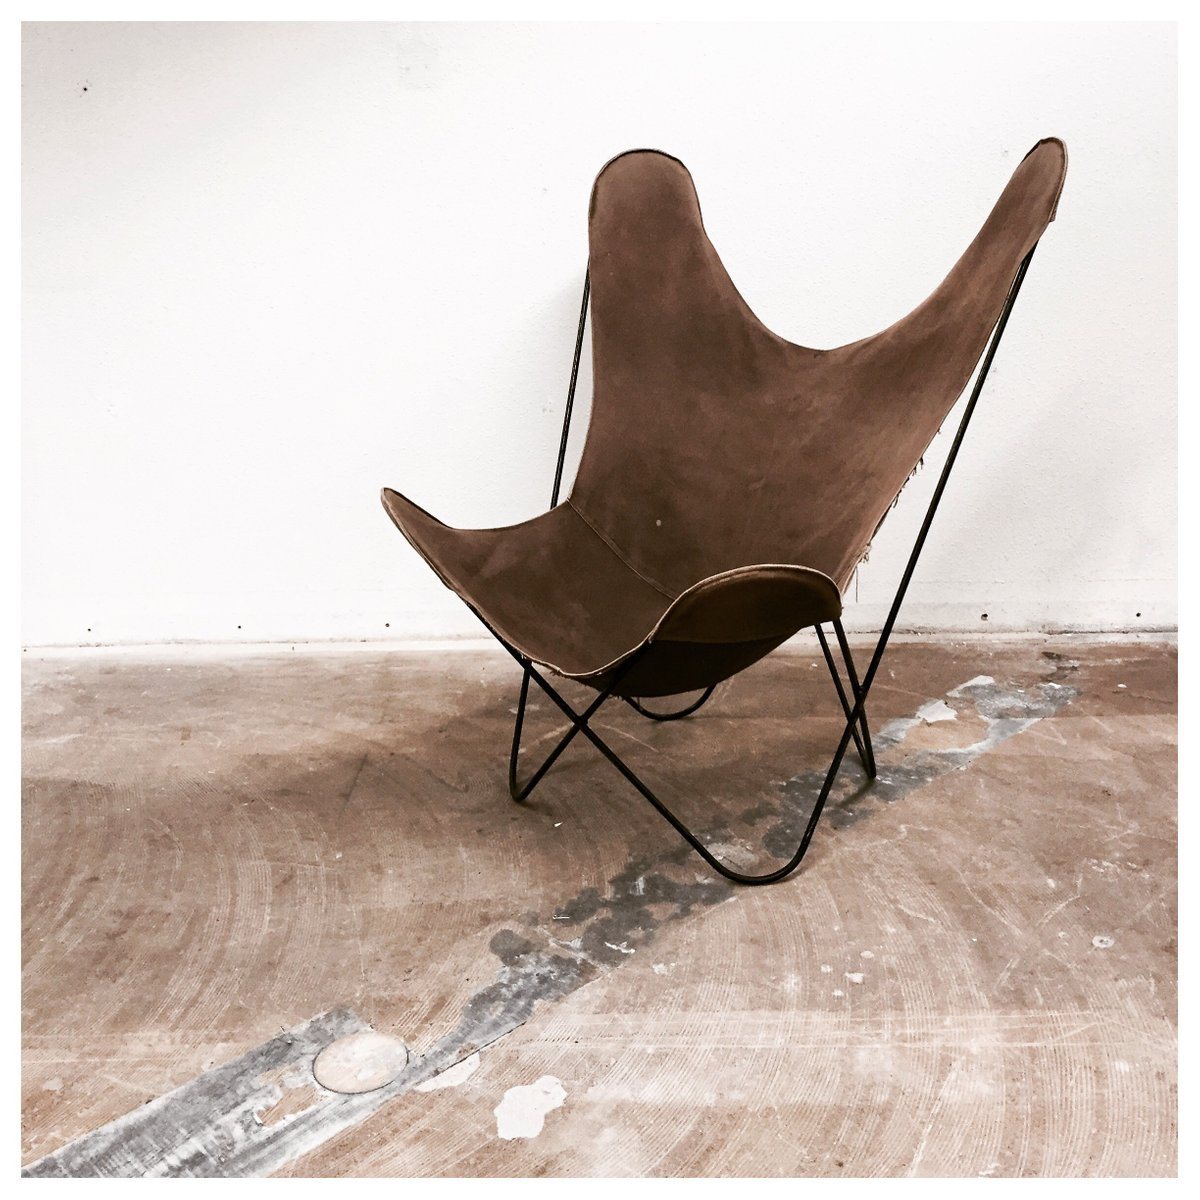 butterfly chair by jorge ferrari hardoy 1938 for sale at. Black Bedroom Furniture Sets. Home Design Ideas